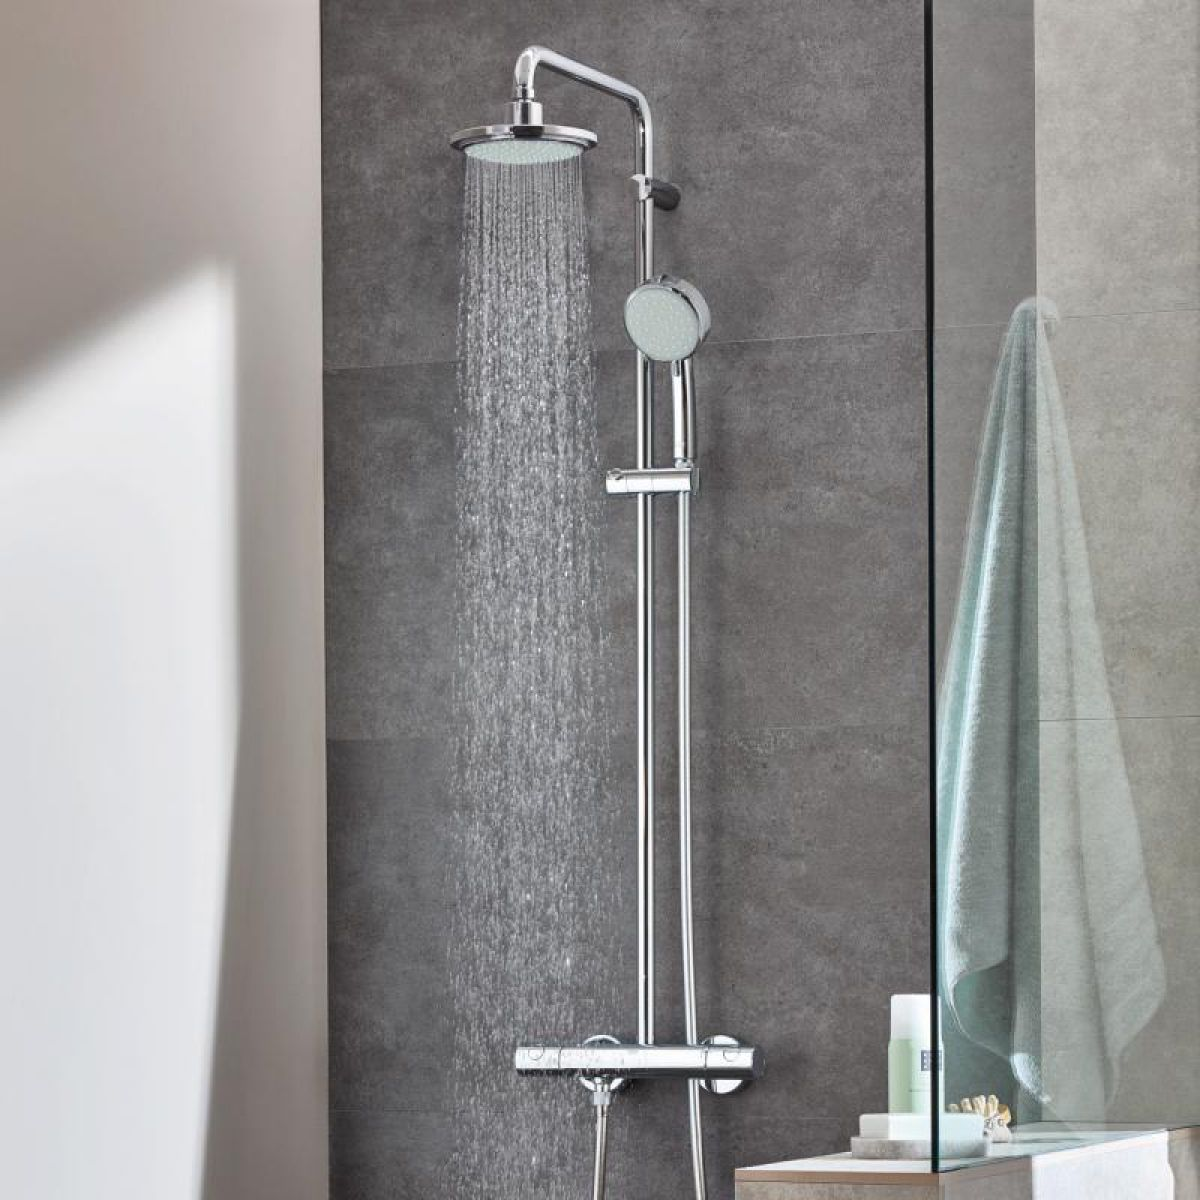 Grohe Vitalio Start System 160 Grohe Tempesta Cosmopolitan 160 Shower System Uk Bathrooms